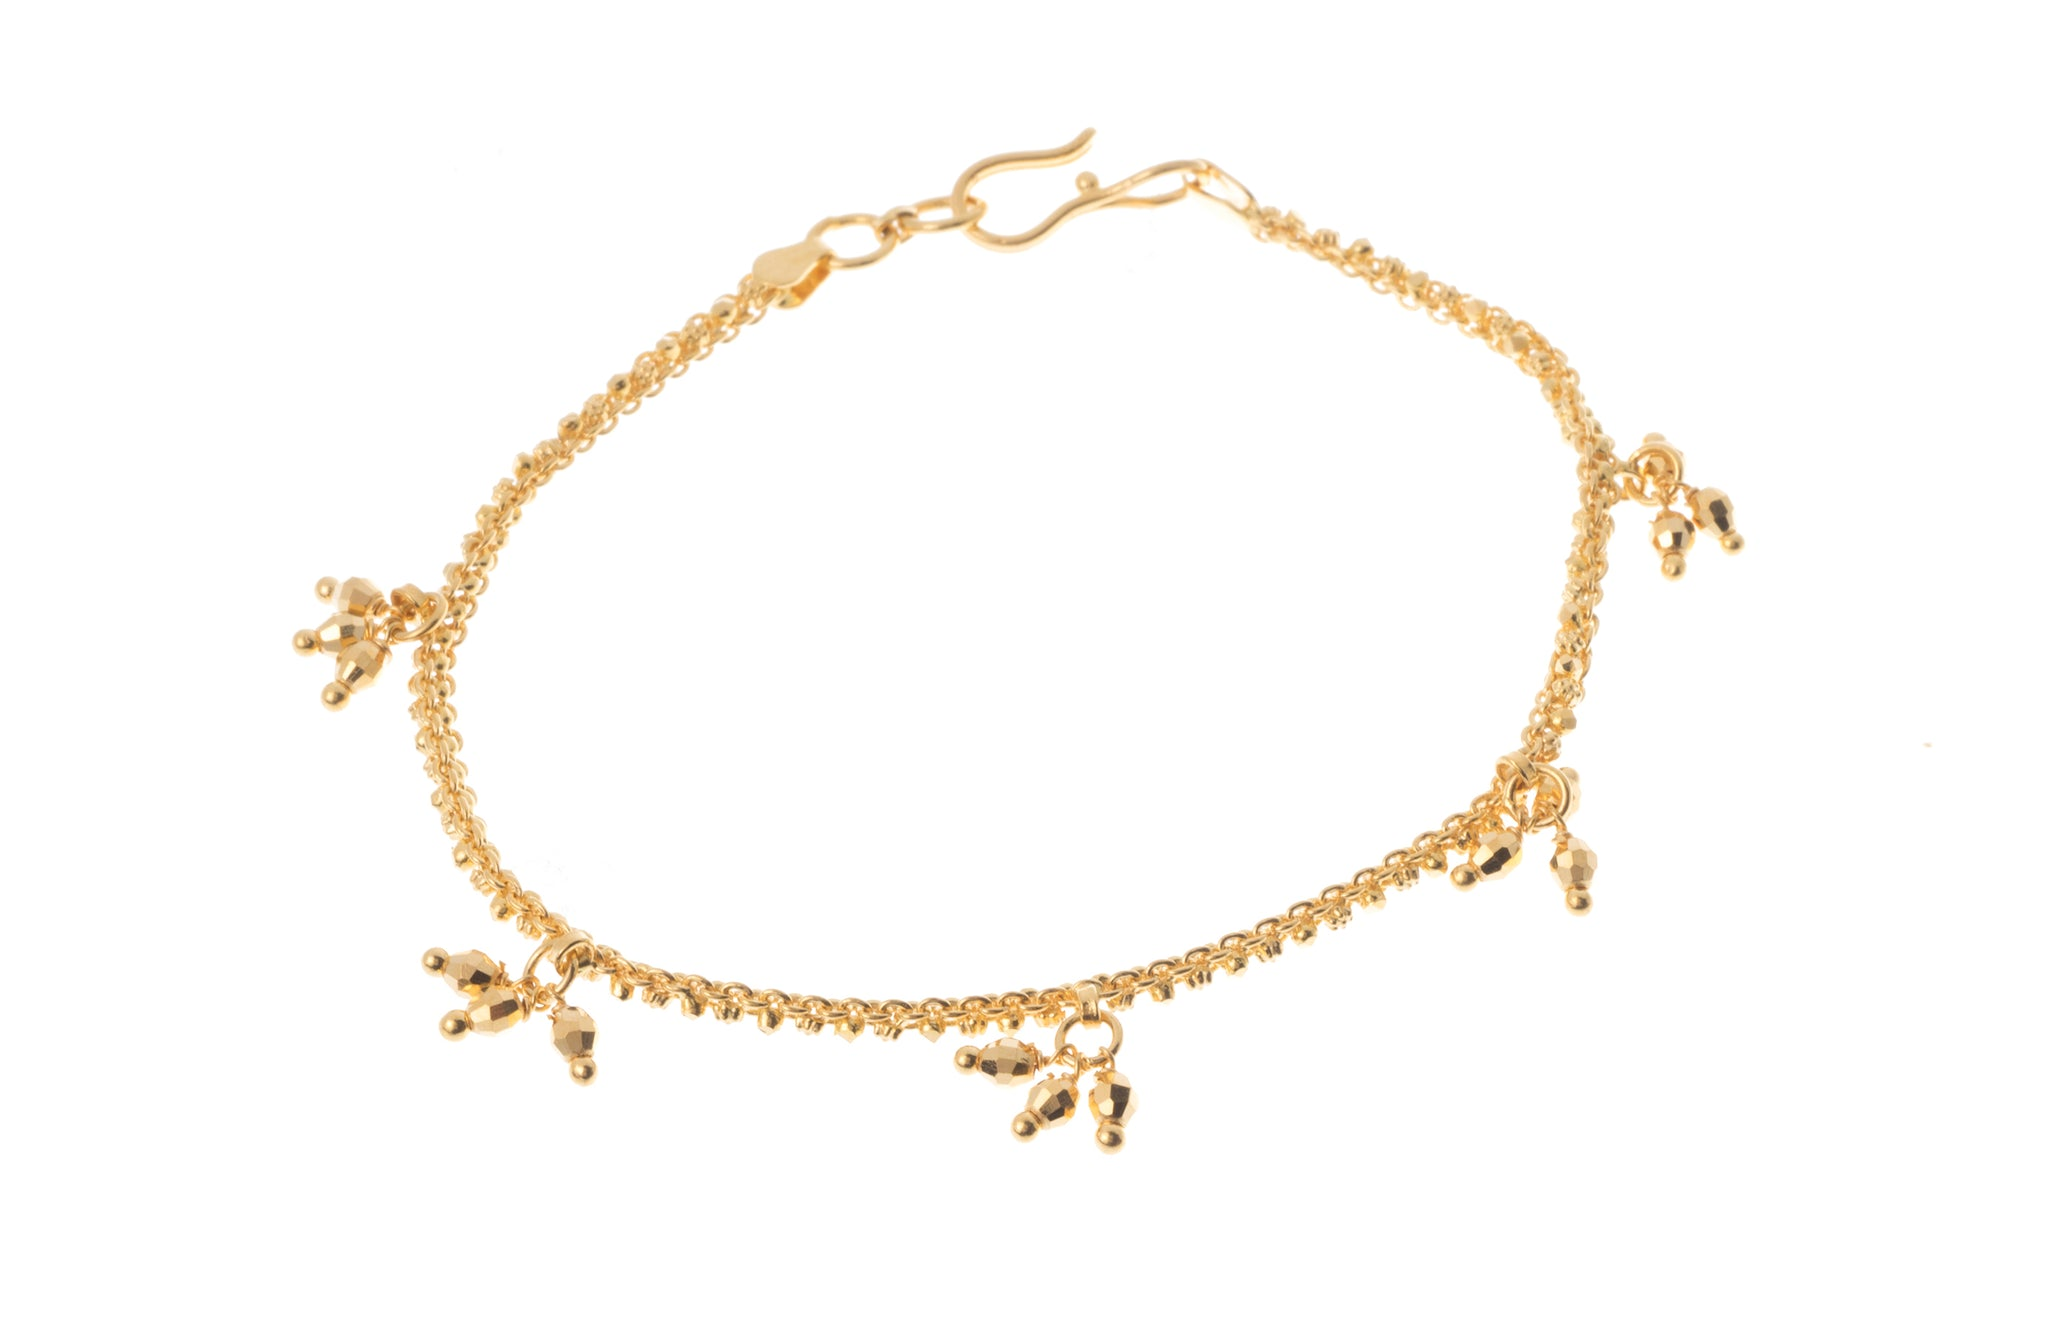 22ct Gold Bracelet with Diamond Cut Drops (7.1g) LBR-7306